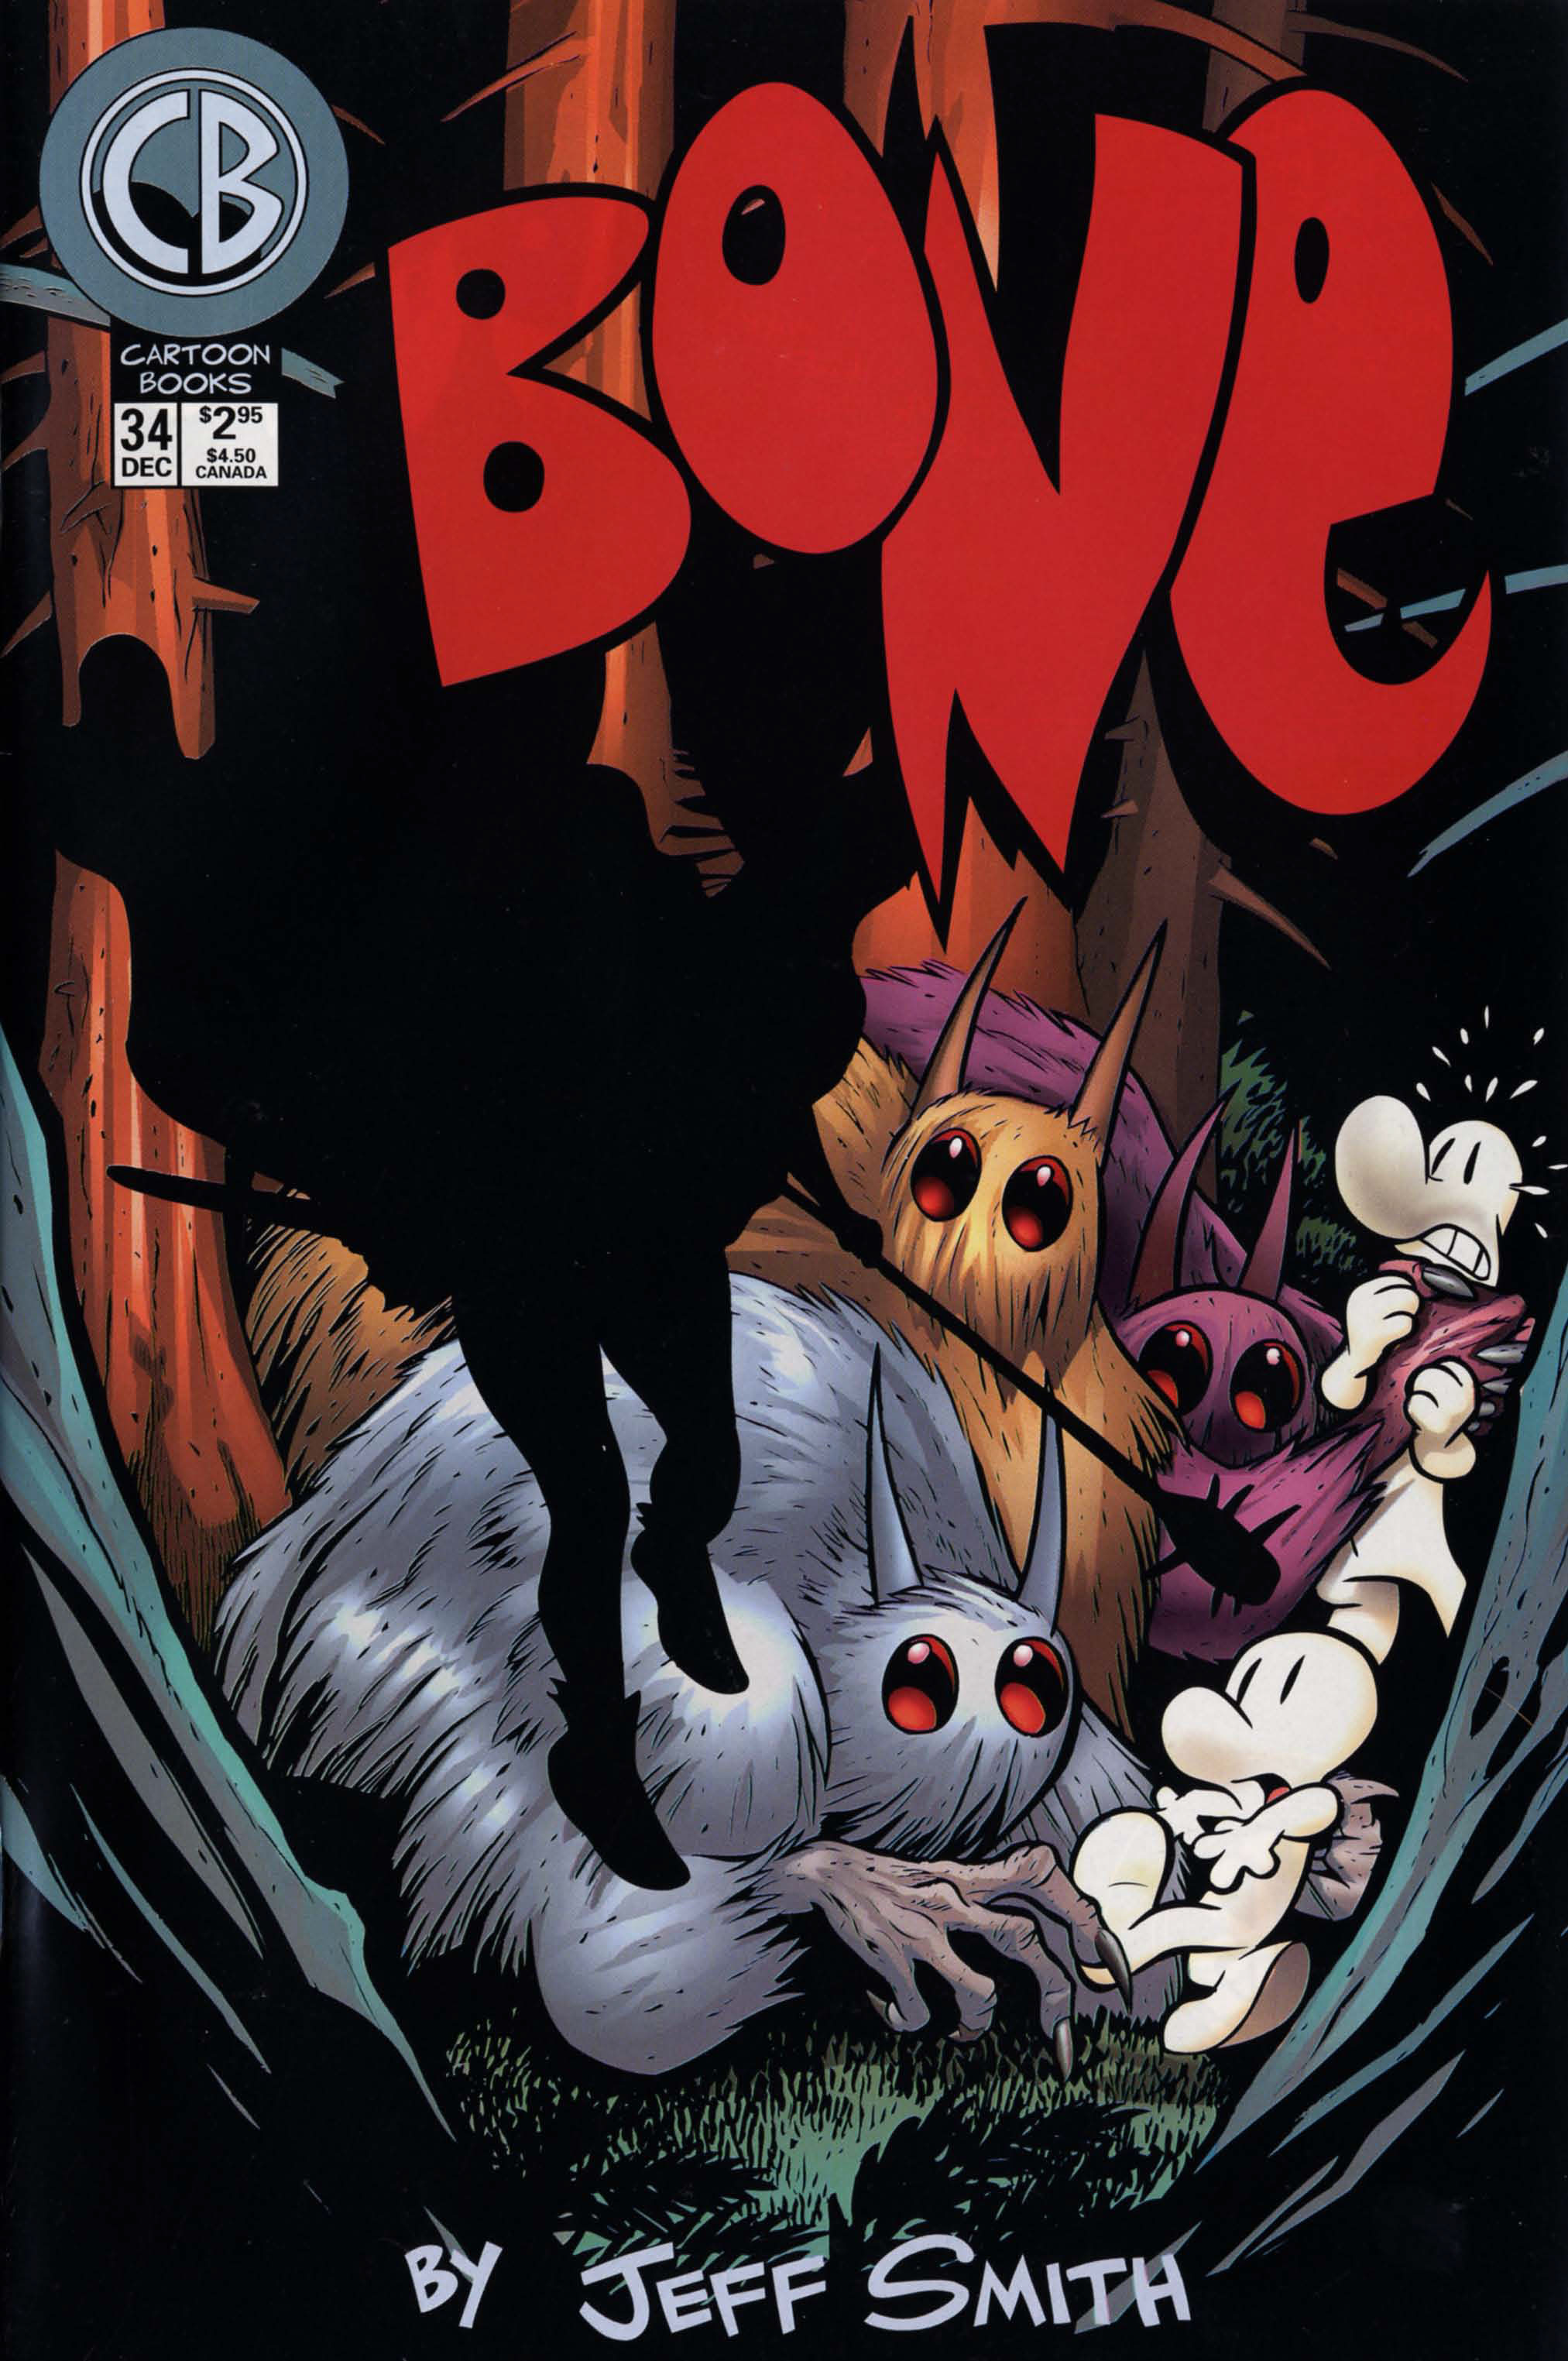 Bone 1991 Issue 34